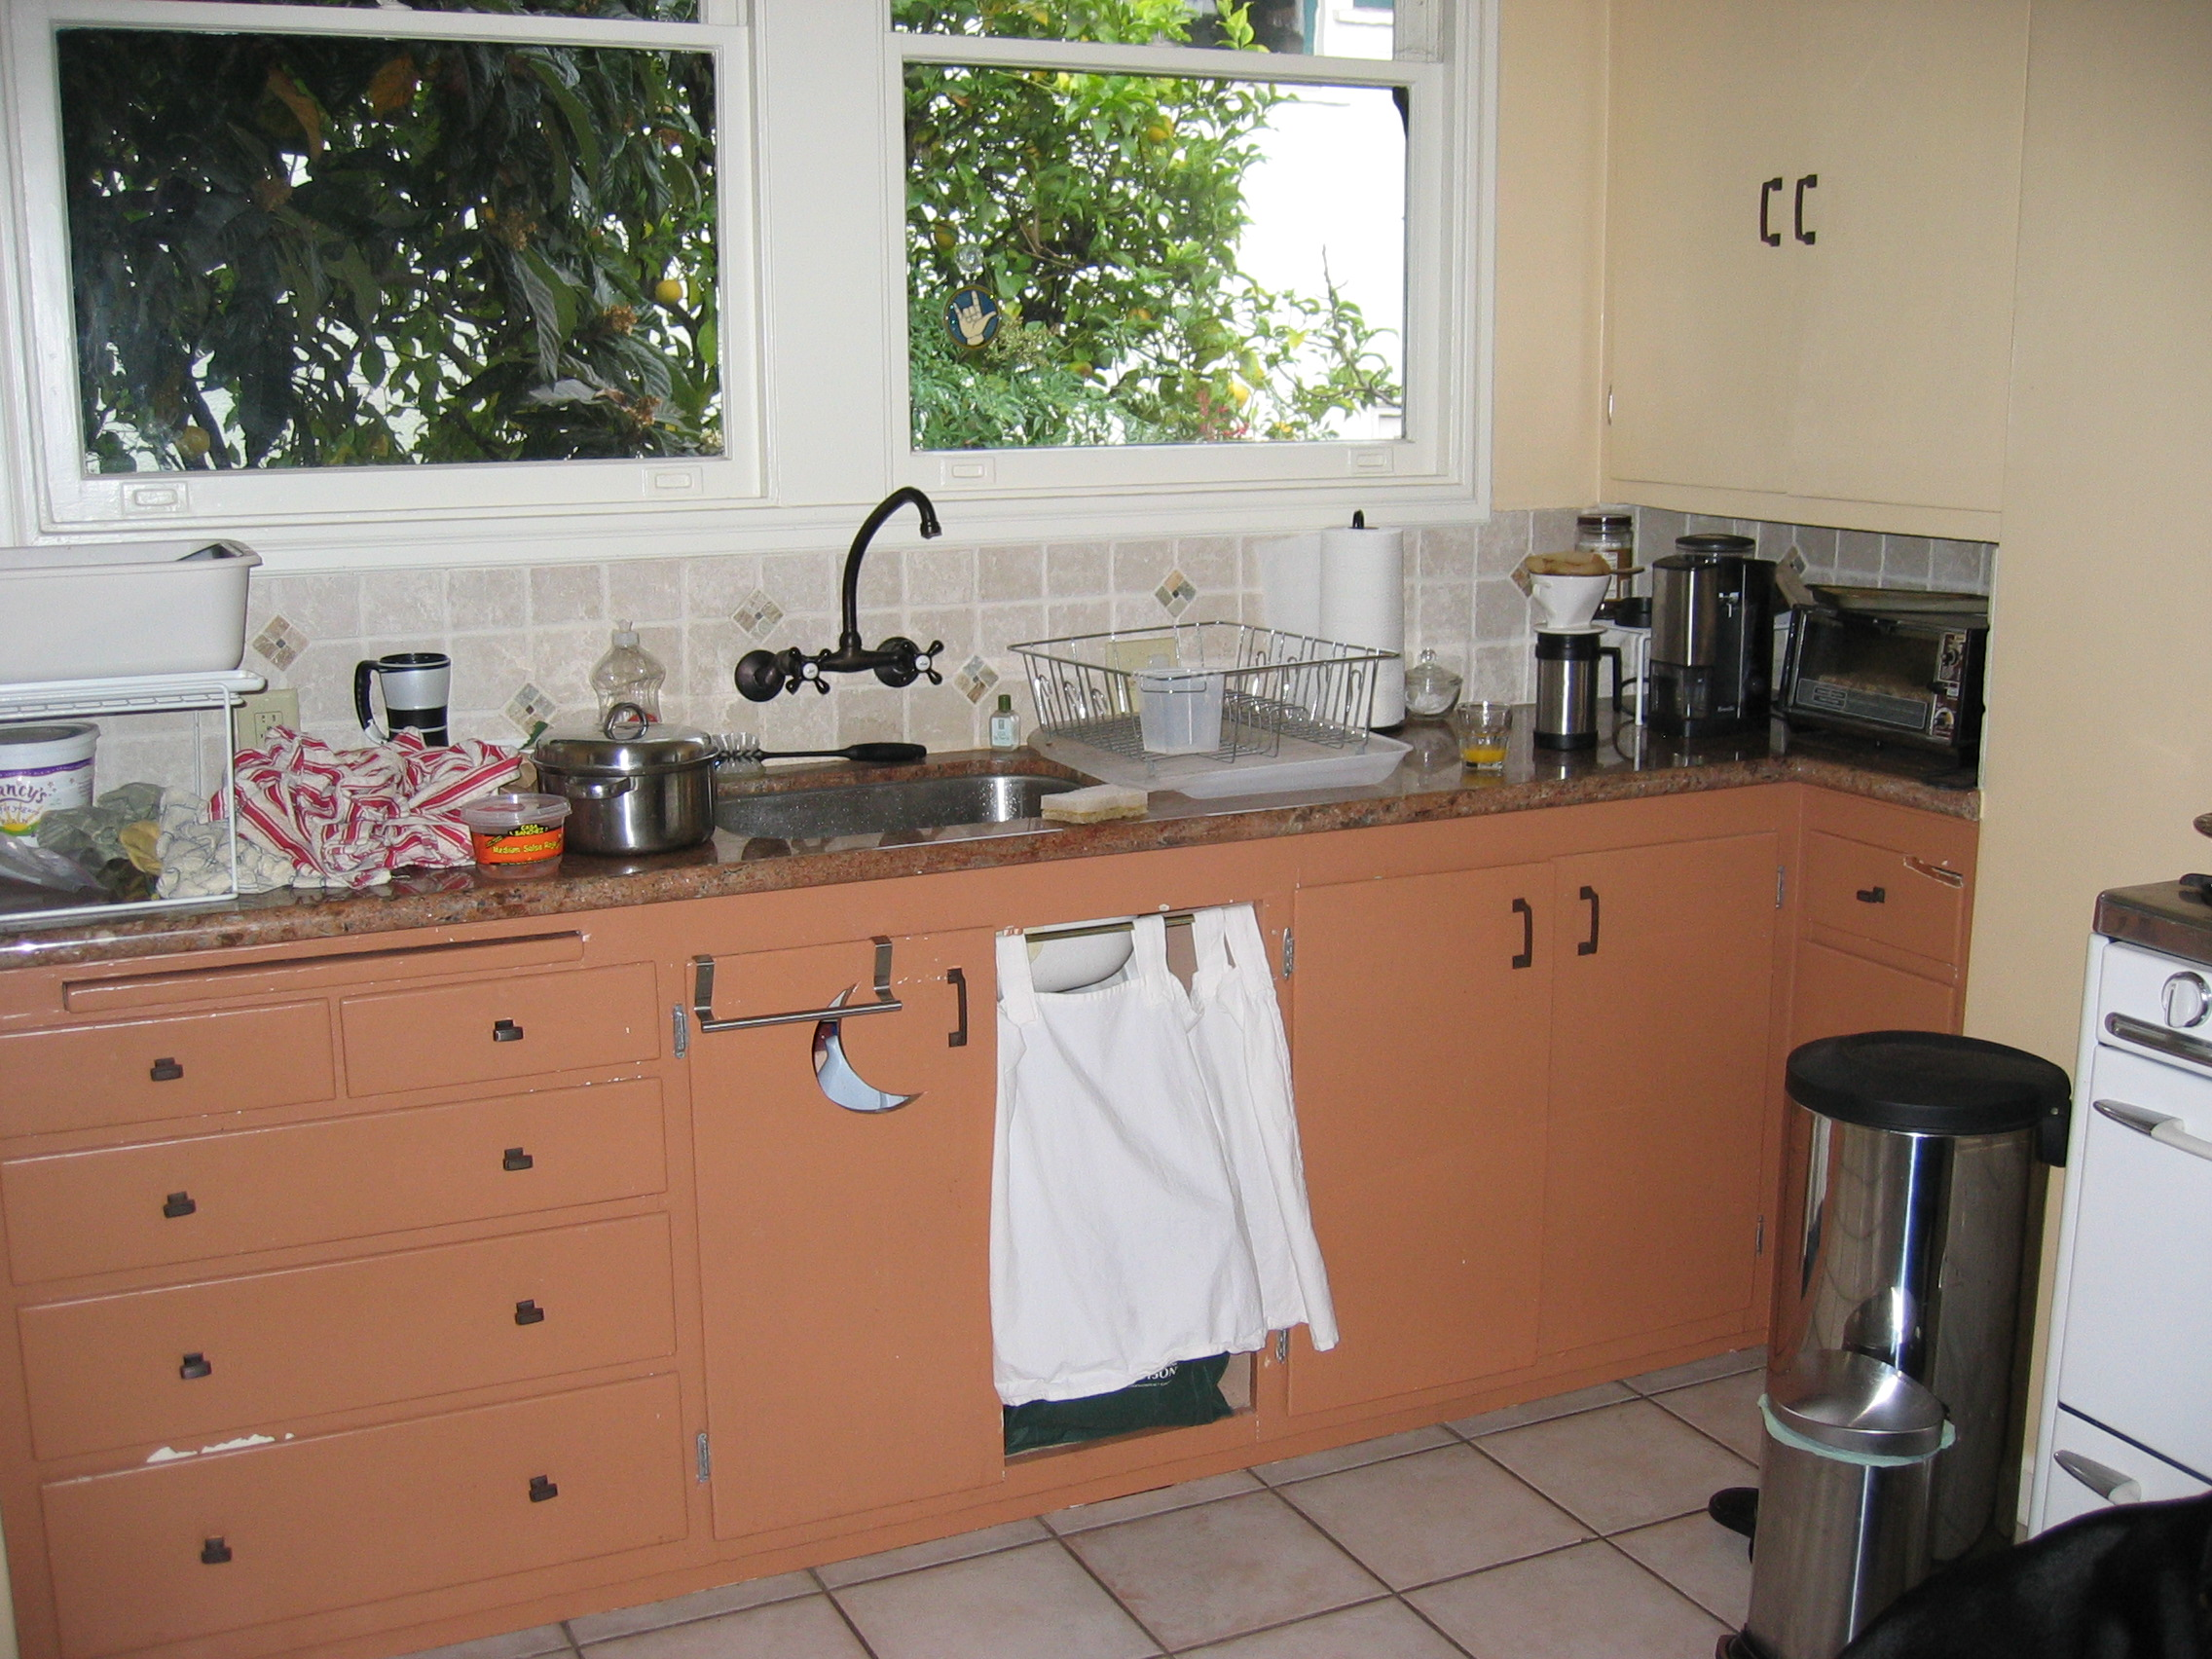 Uncategorized 1930s Kitchen Appliances could you would rescue this 1930s kitchen httpcityhomestead files wordpress com200901img 0870 jpg